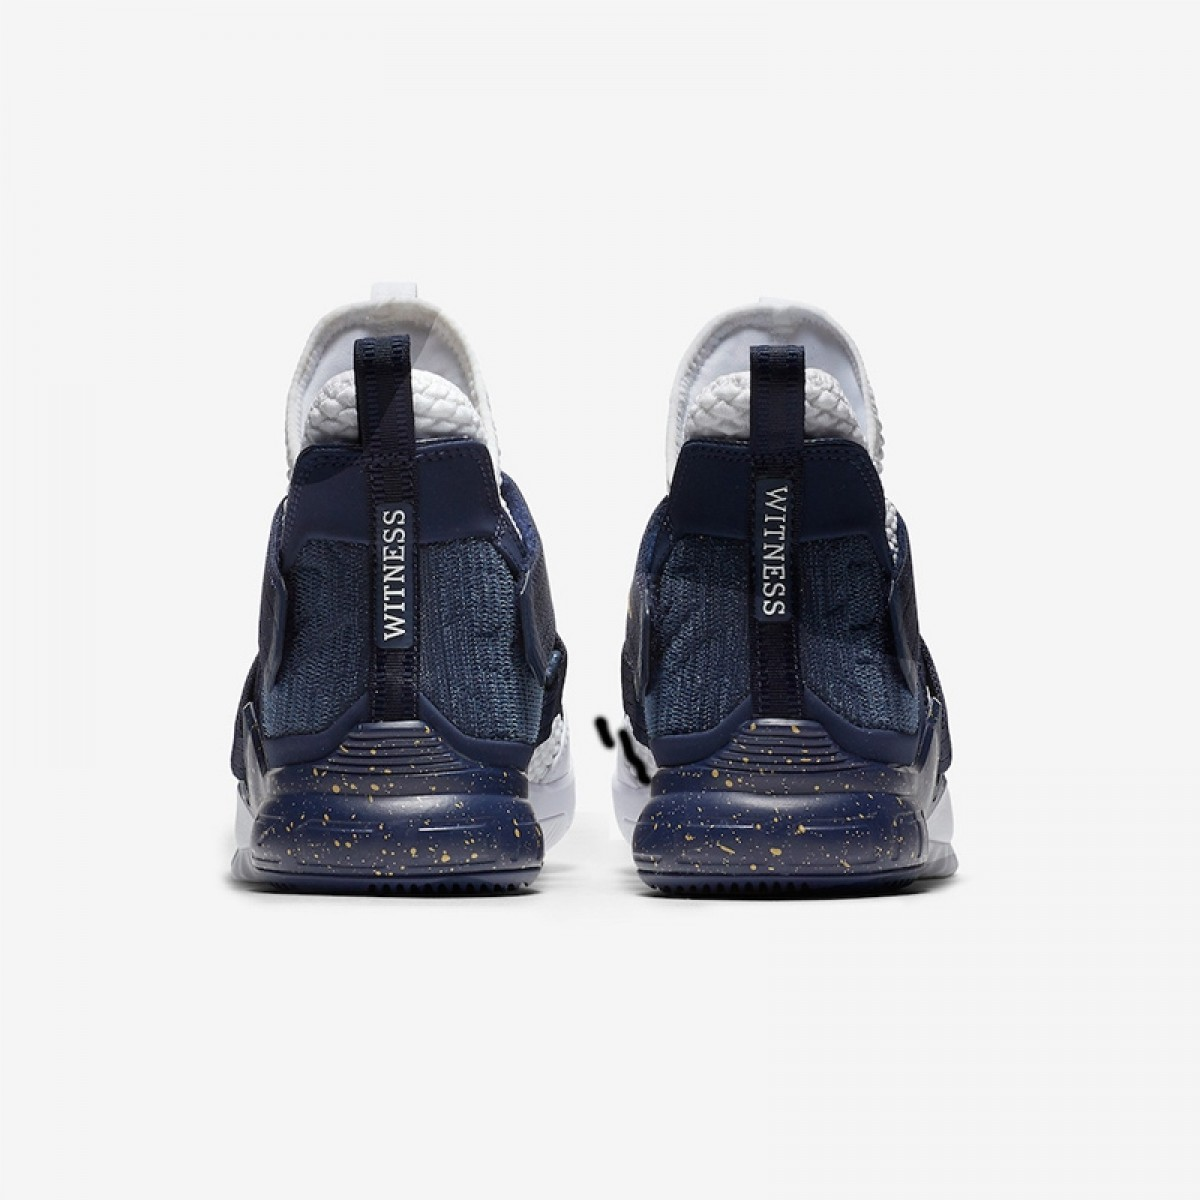 Nike Lebron Soldier XII SFG '25 STRAIGHT' AO4054-100